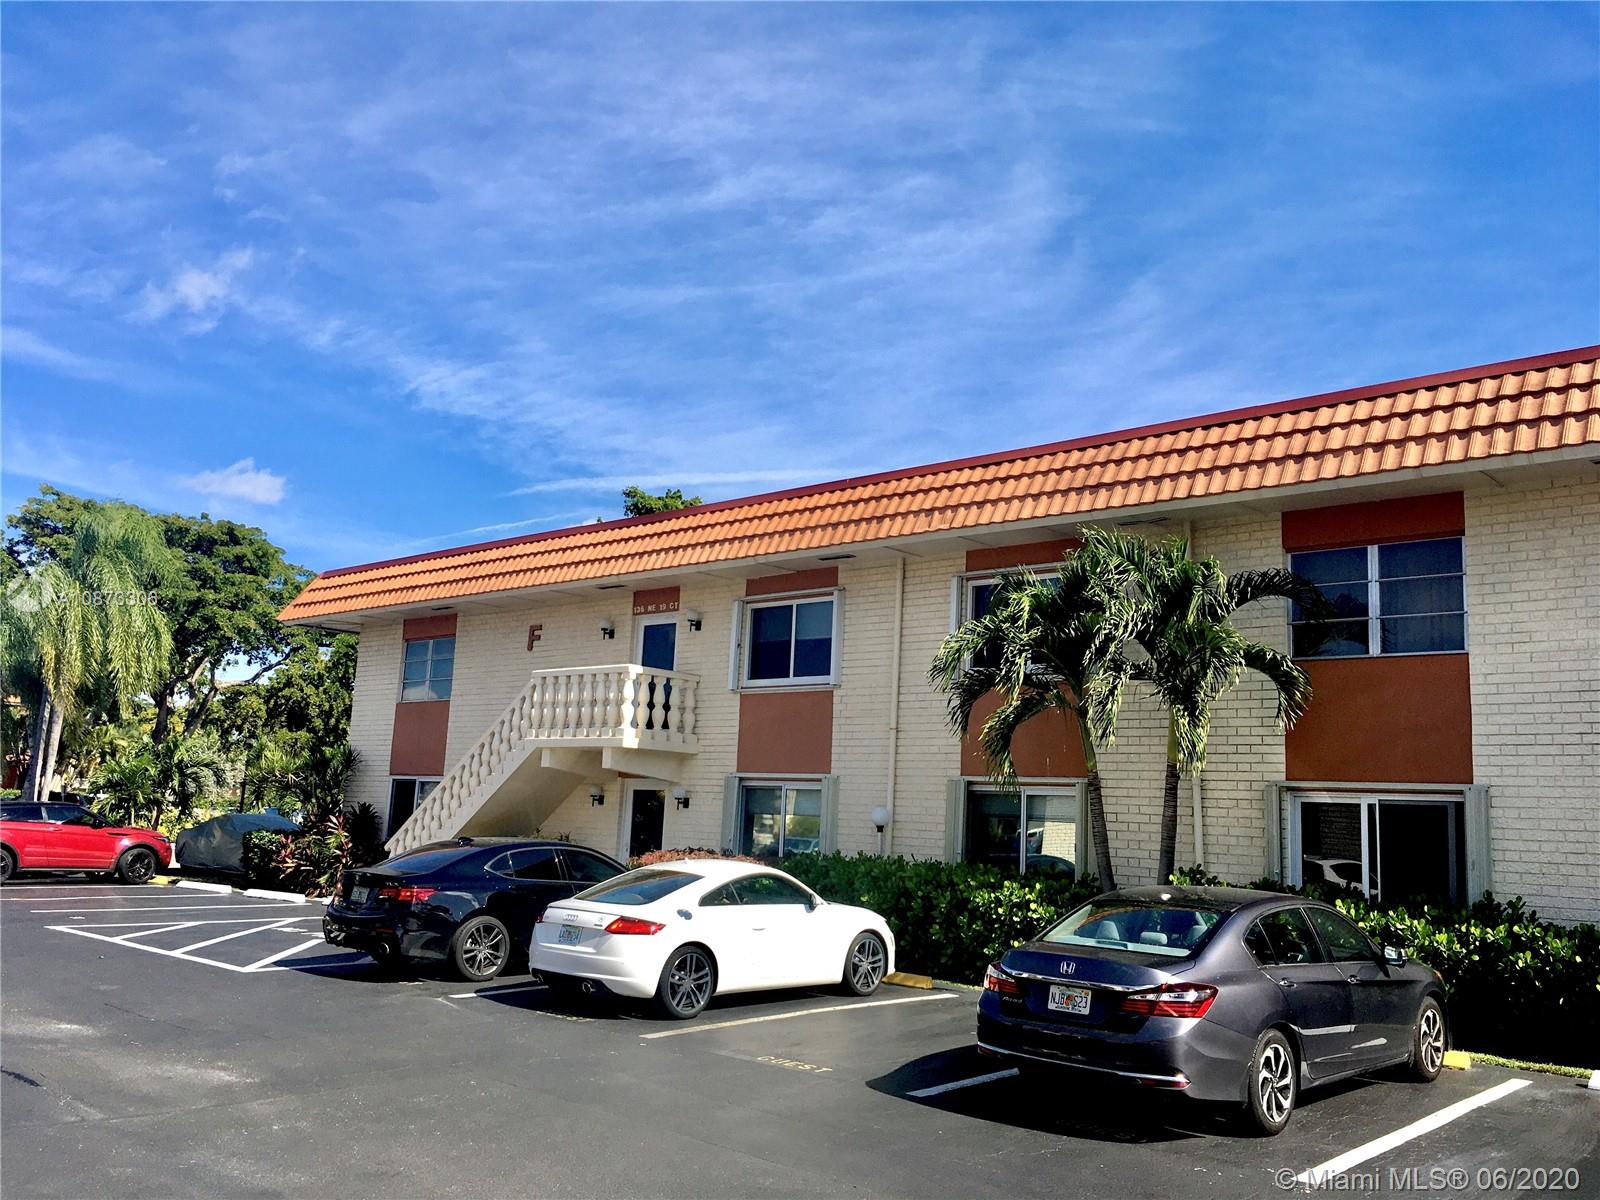 Move-in ready, Spacious 2/2 Corner unit. Located in the heart of Wilton Manors, walking distance to the shops, restaurants & nightlife on Wilton Drive! Short drive to the Beach .Pool and club house located a few steps away.HUGE living Area and MASTER bed room.Updated floors.Partially furnished.NEW AC UNIT and TANKLESS WATER HEATER!!DOGS Allowed.Washer and dryer is allowed to be installed per association.Well maintained property with low maintenance fees and a financially sound HOA.NO LAND LEASE!